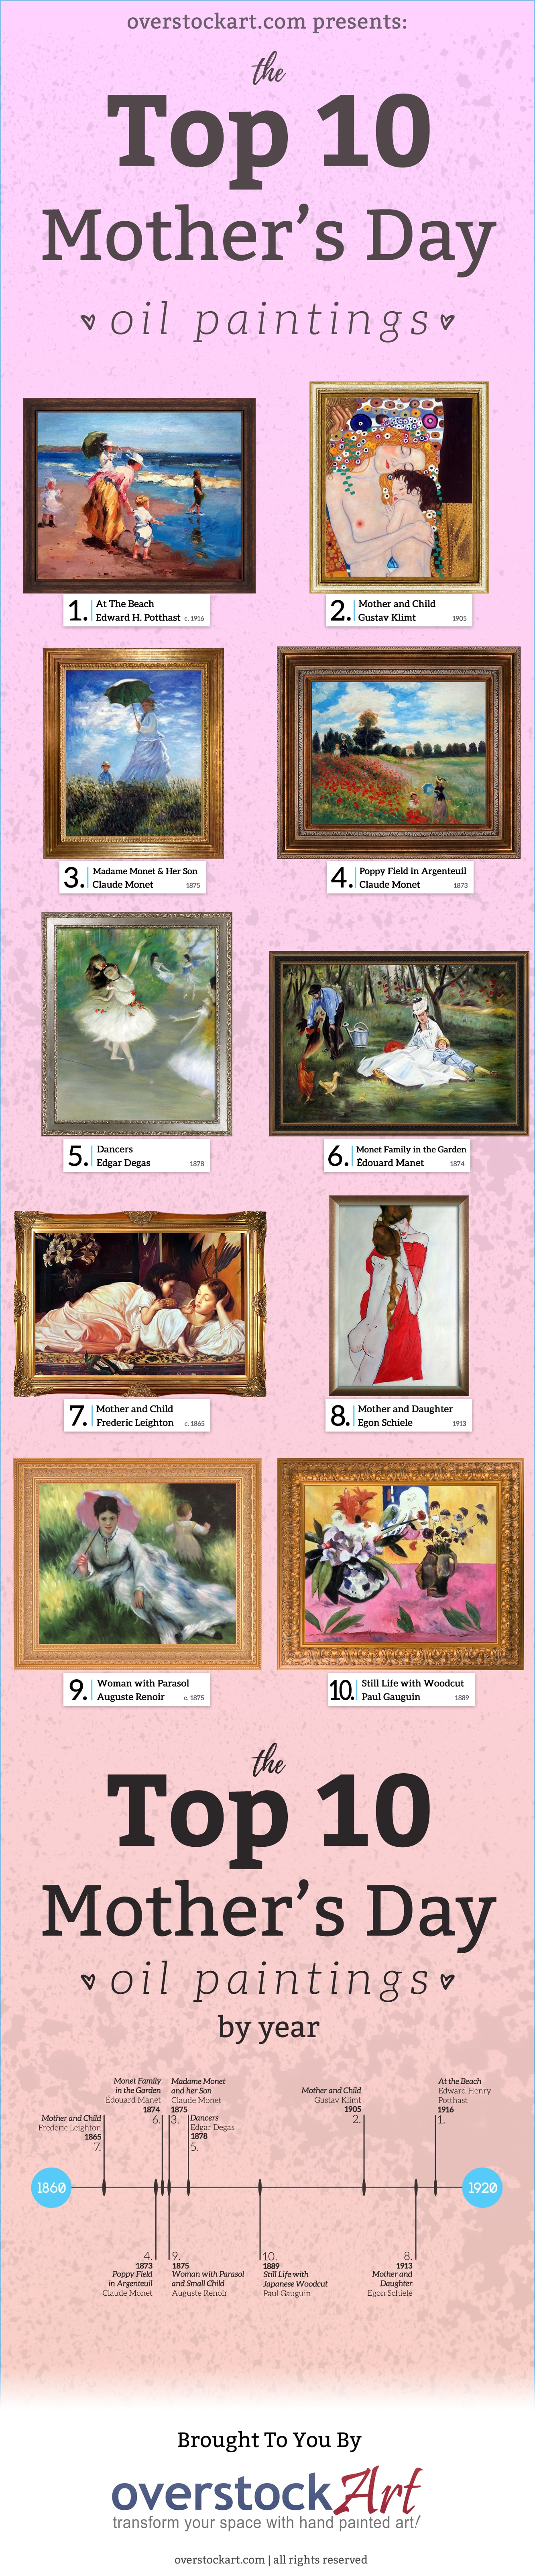 Top Ten Art For Mothers Day 2017 Infographic